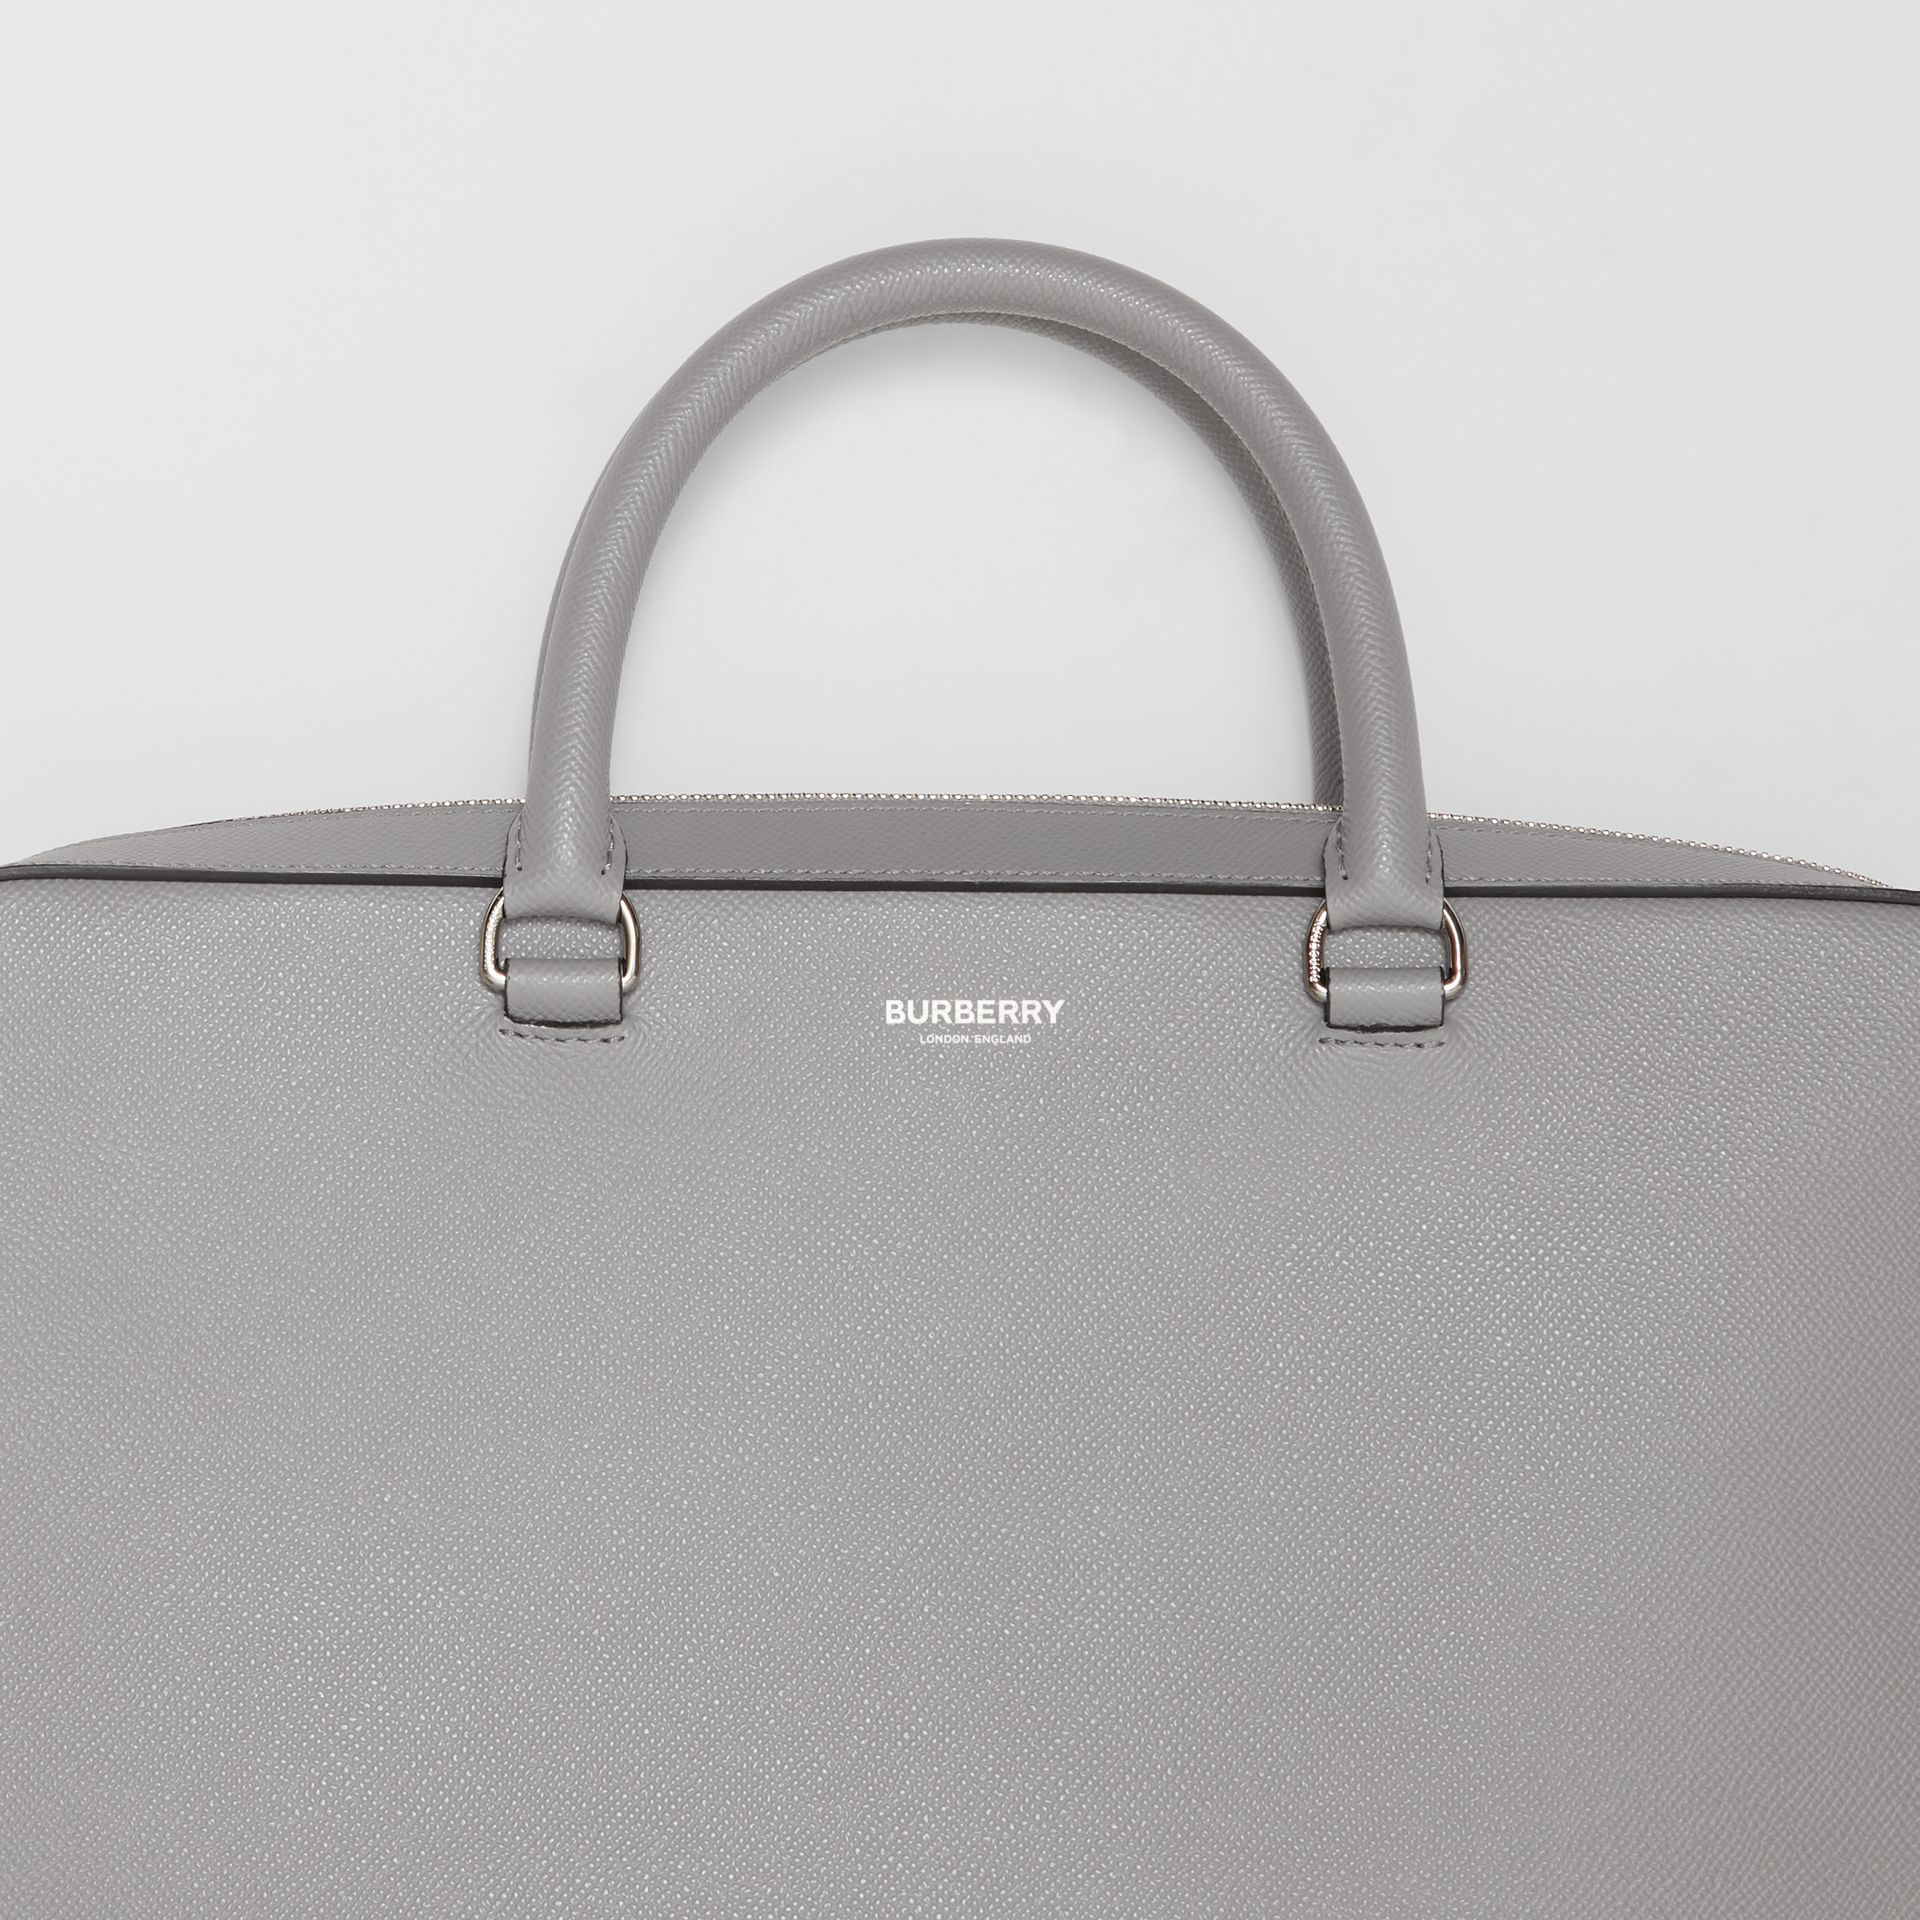 Grainy Leather Briefcase in Cloud Grey - Men | Burberry - gallery image 1